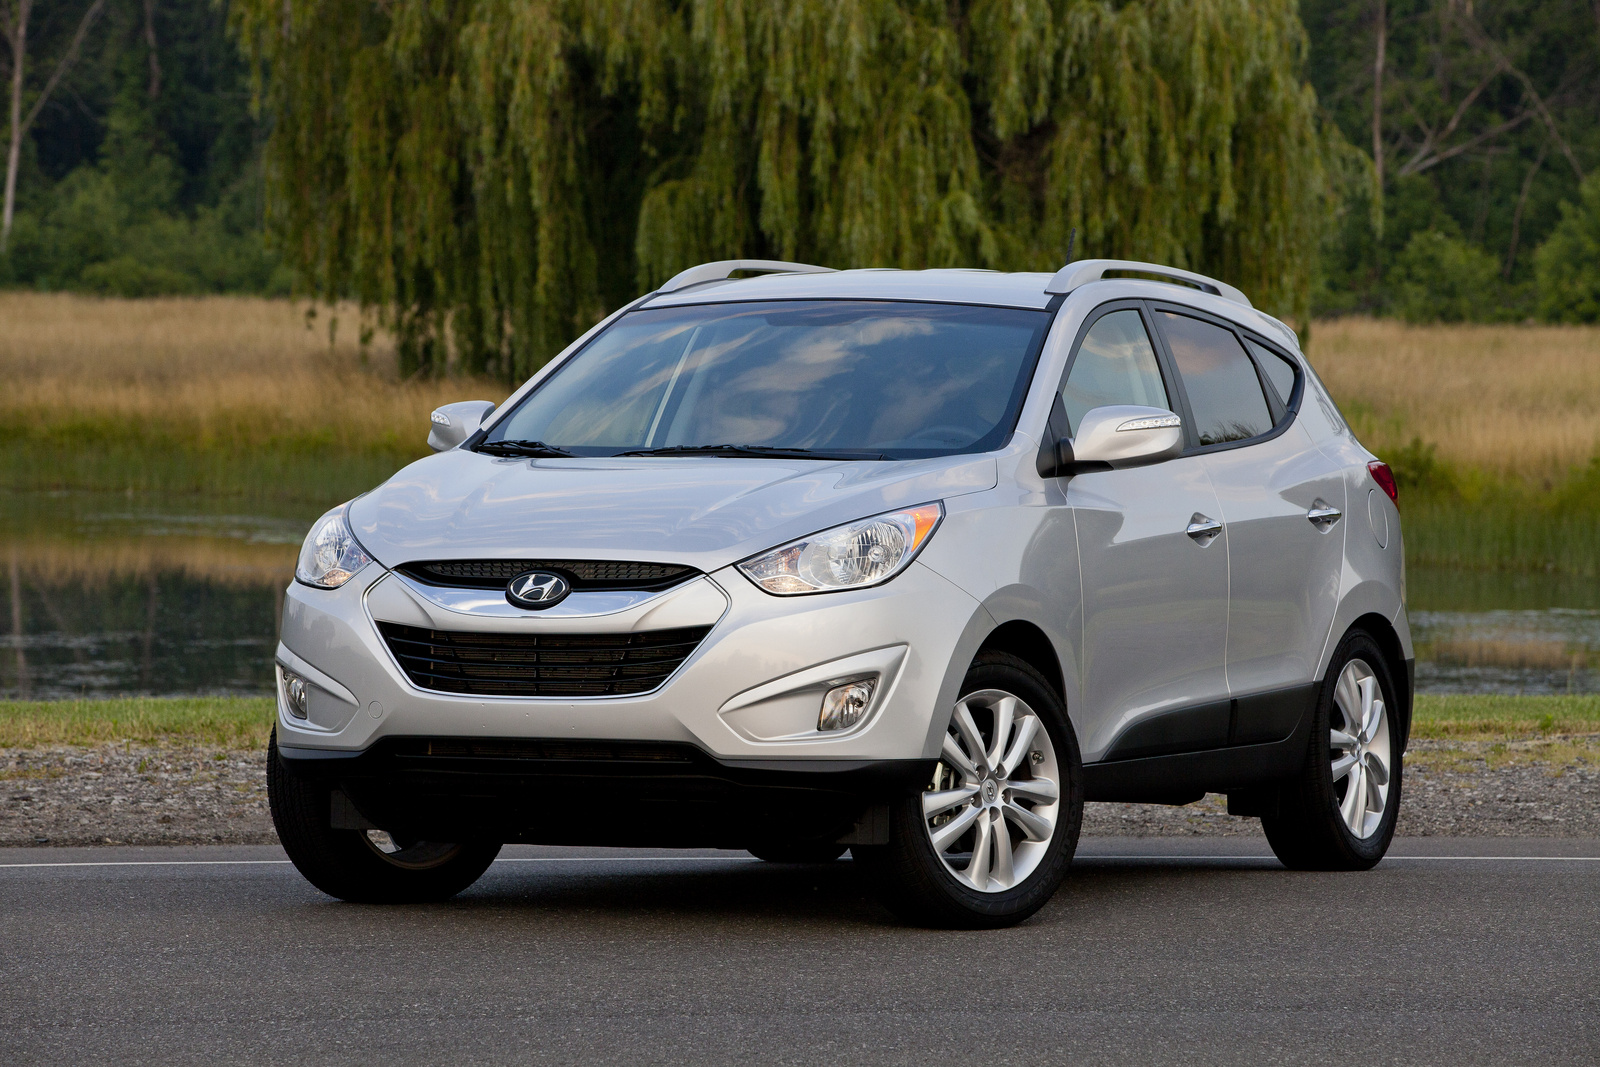 2013 hyundai tucson review cargurus. Black Bedroom Furniture Sets. Home Design Ideas